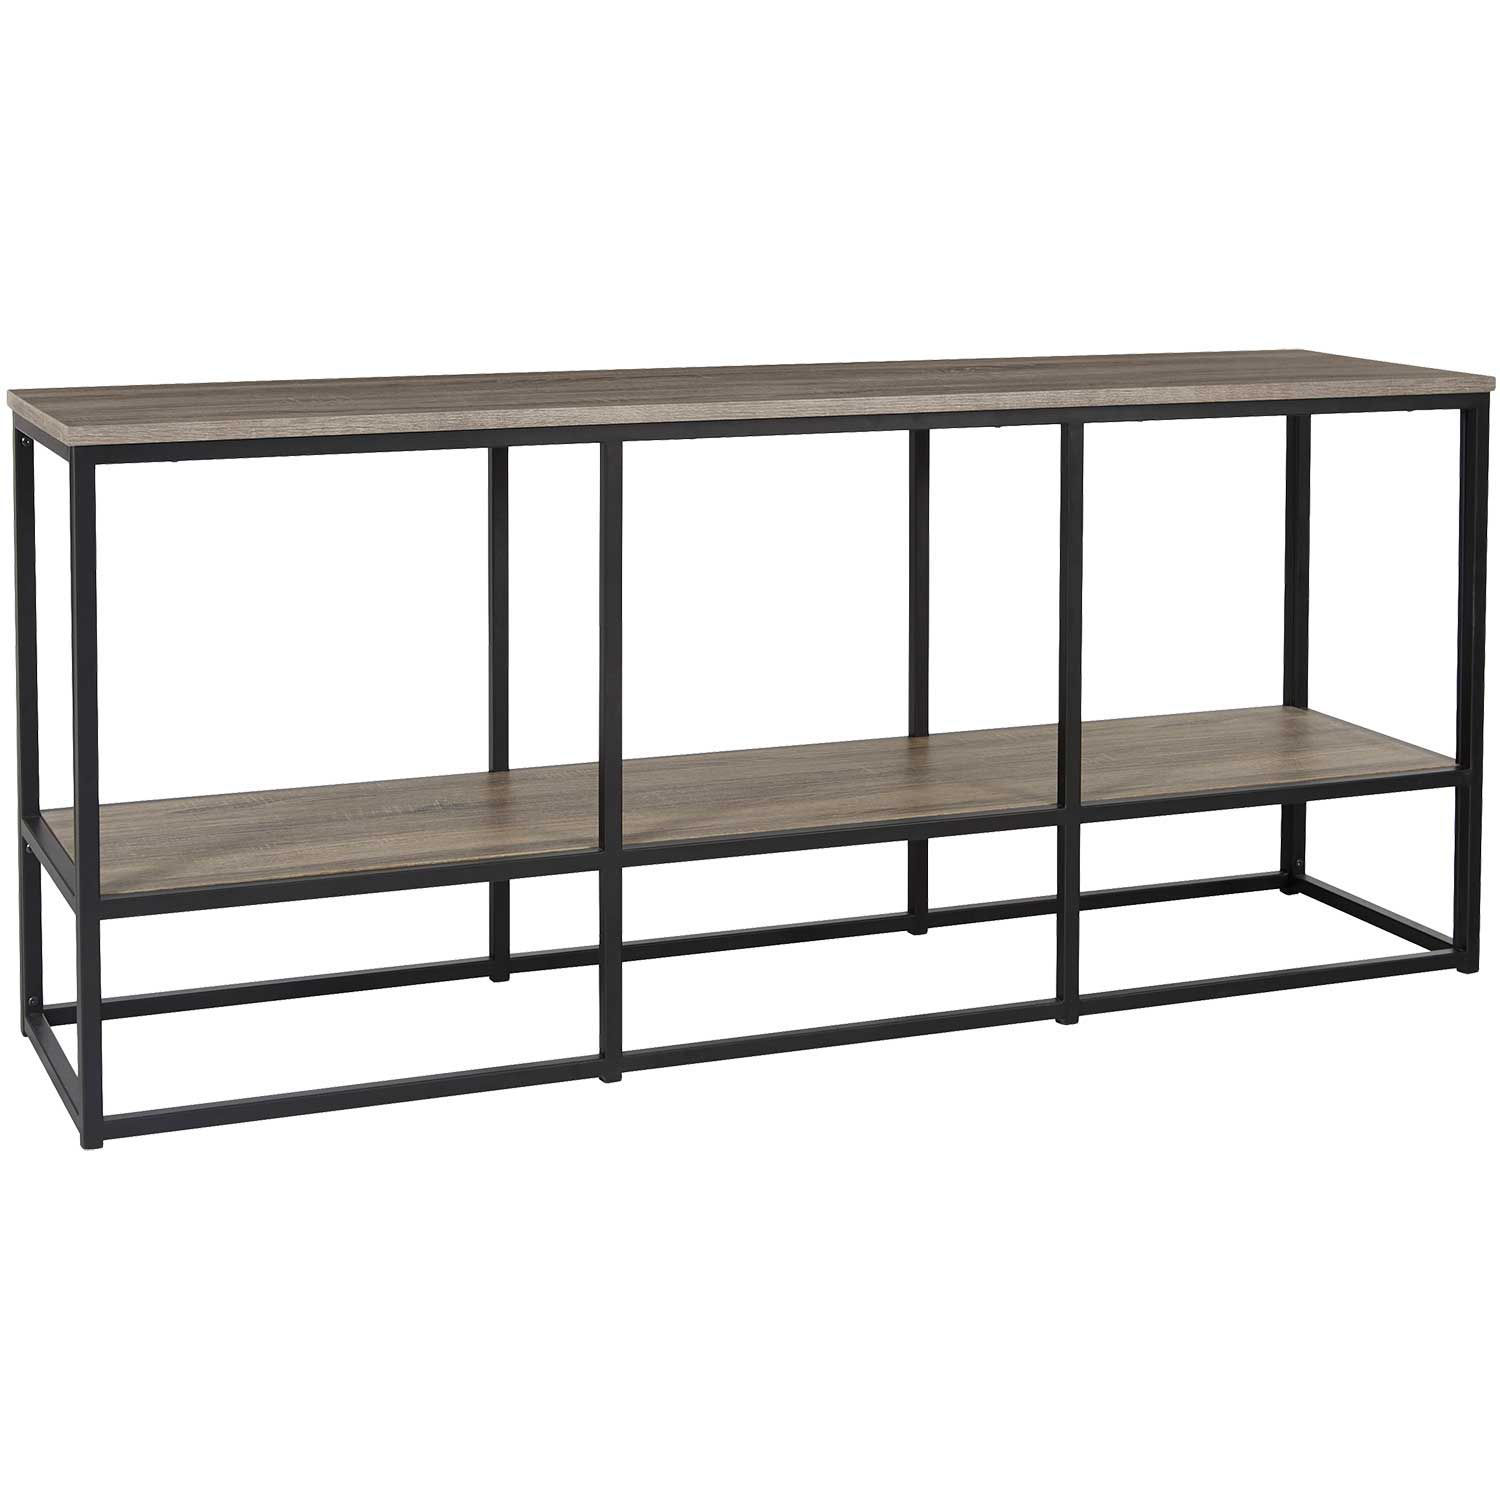 "Picture of Wadesorth 65"" TV Stand"